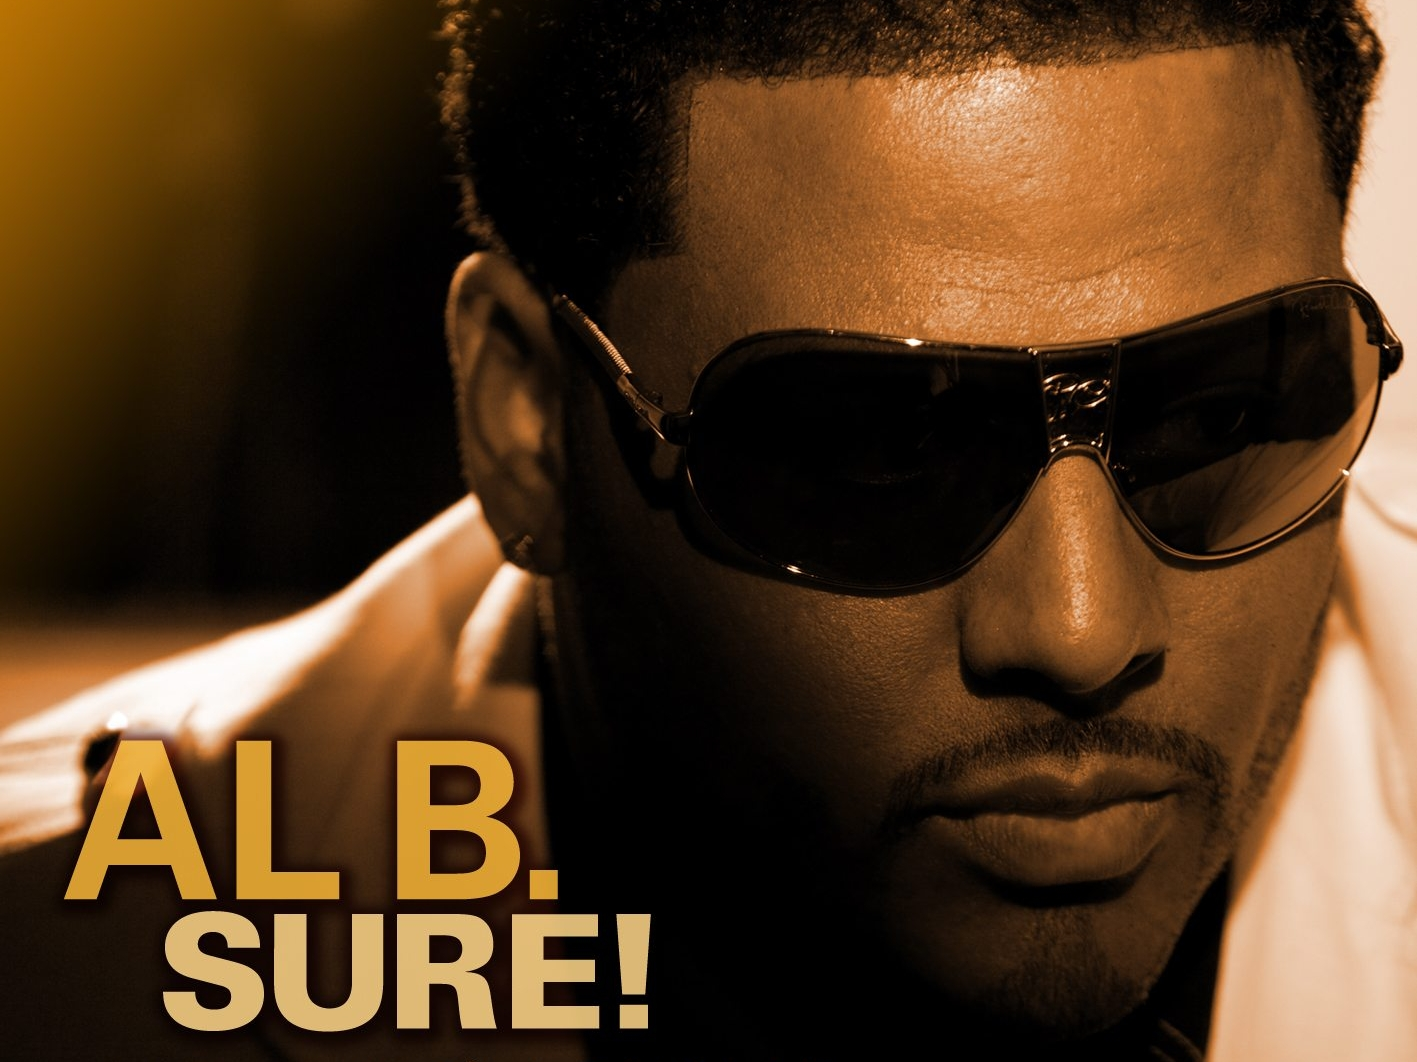 Al B. Sure! Honey I'm Home Album Cover